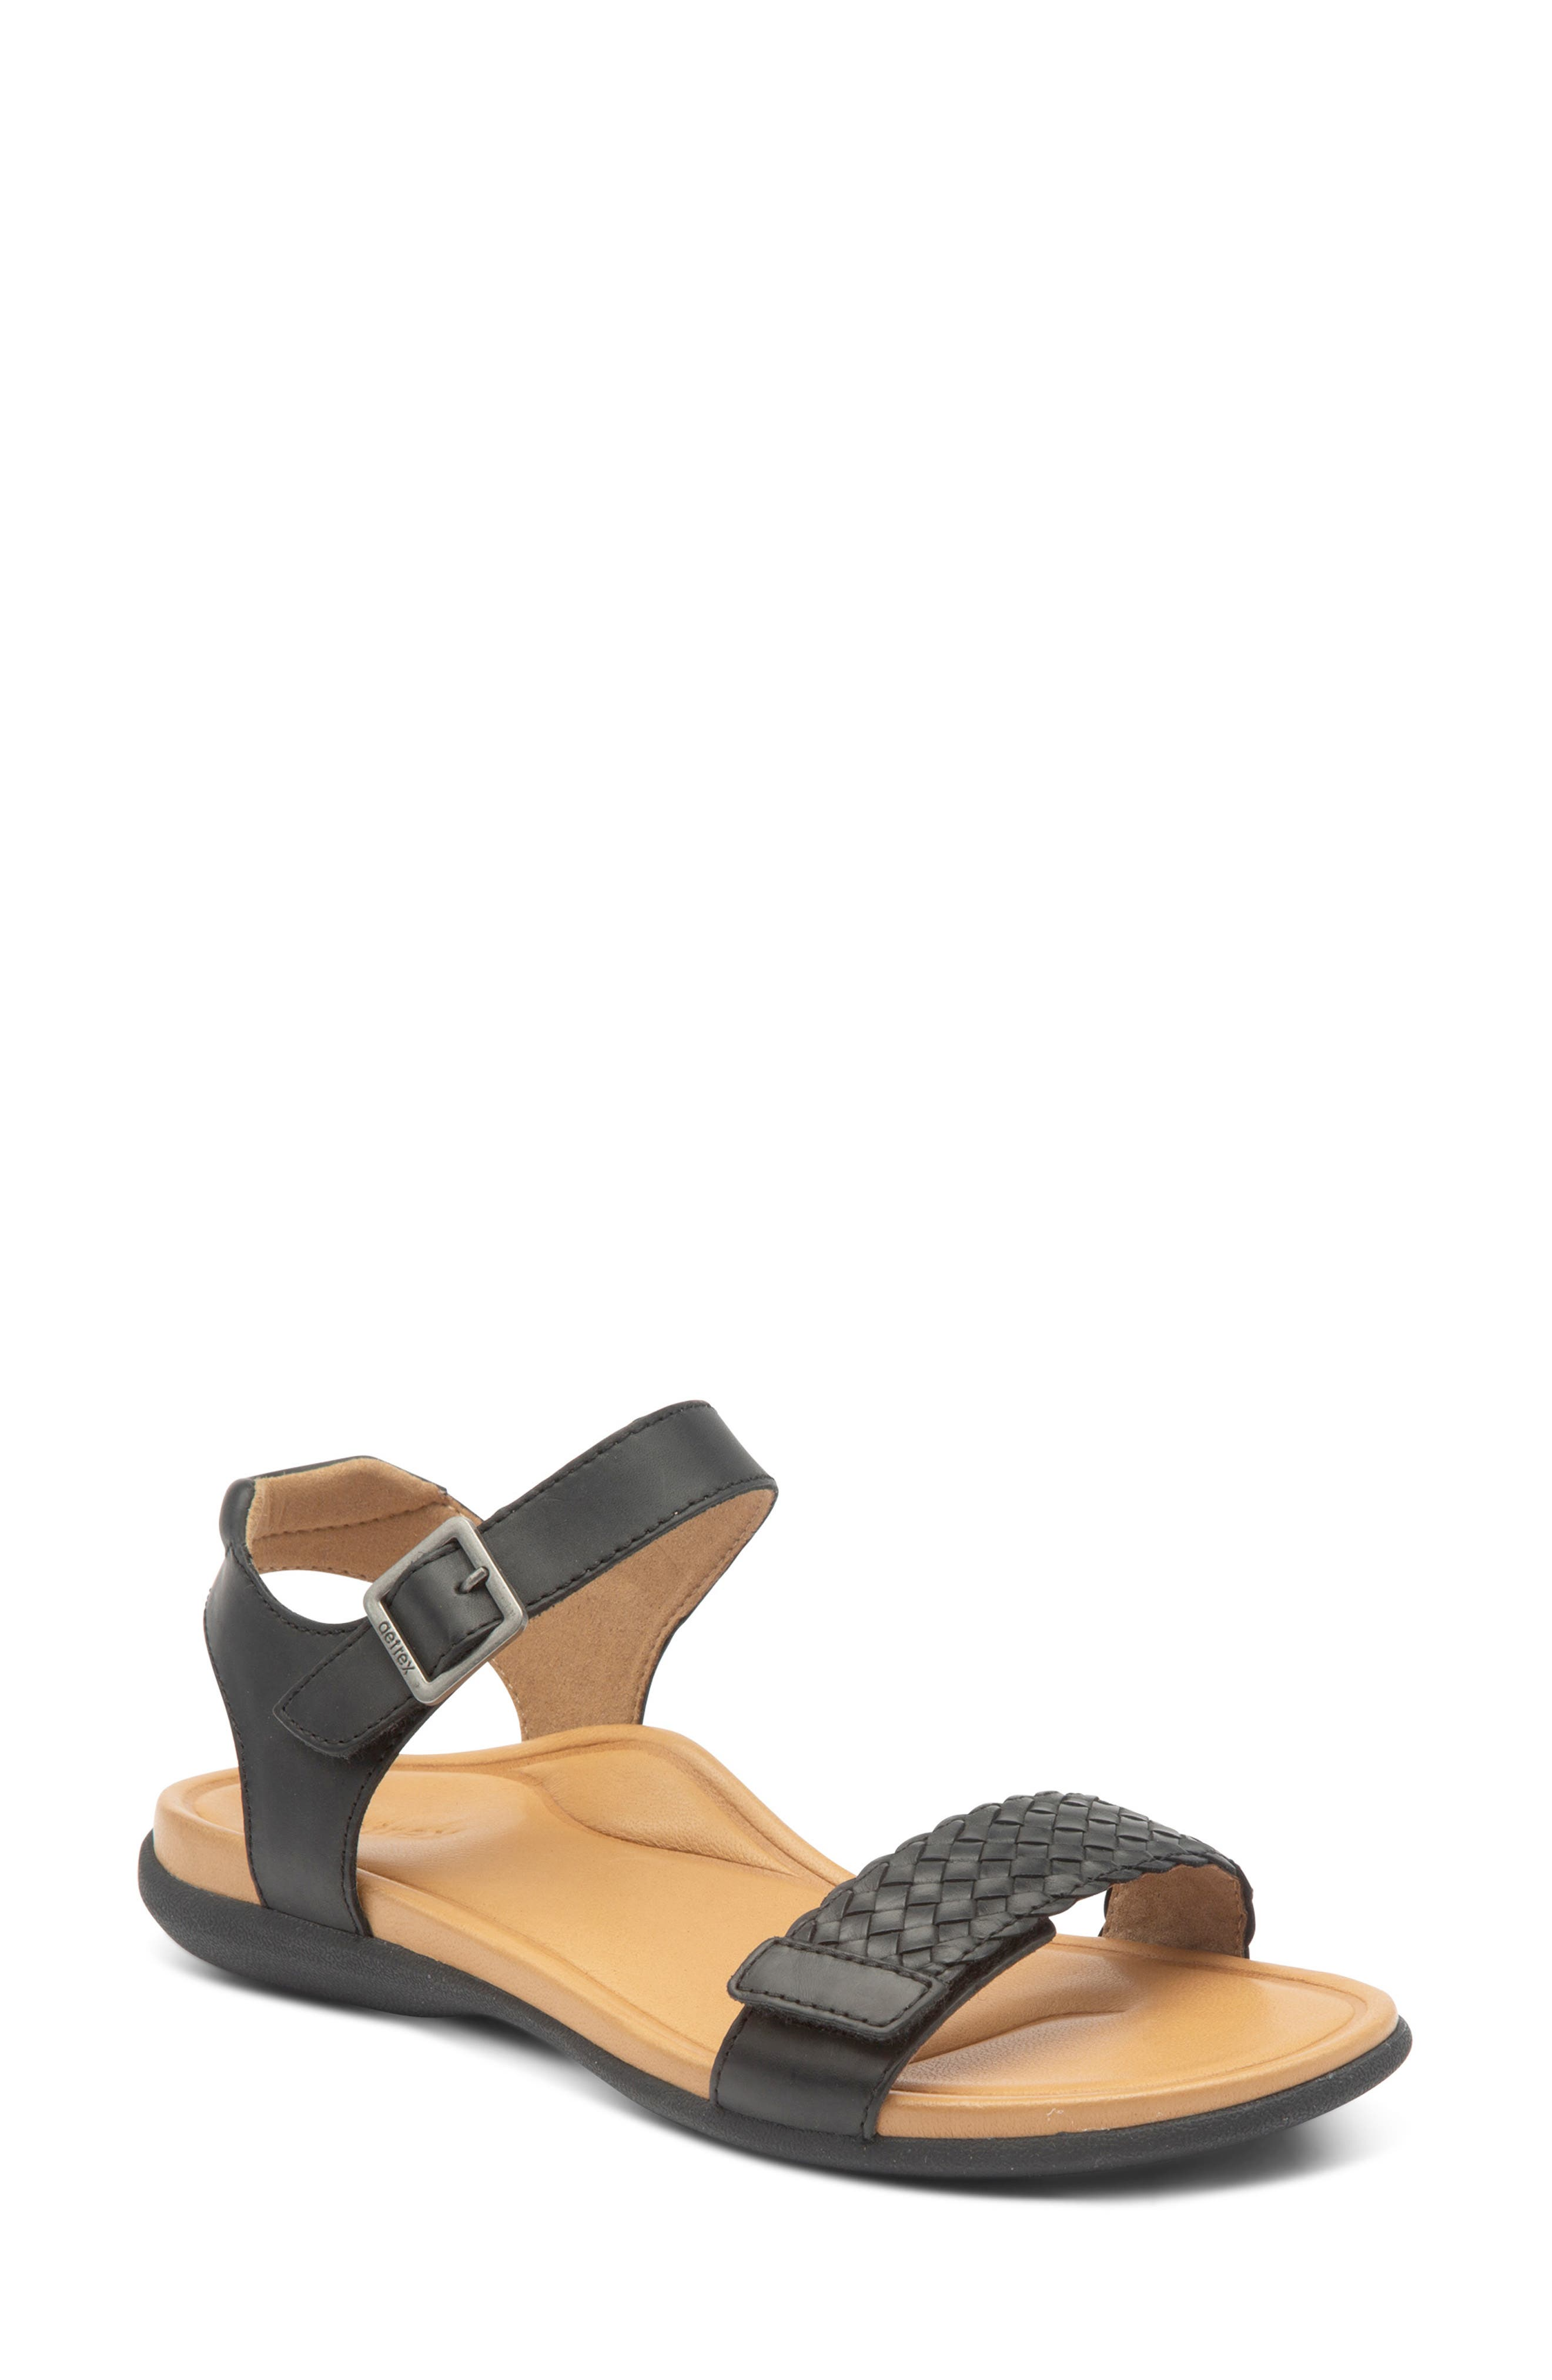 Lucy Sandal